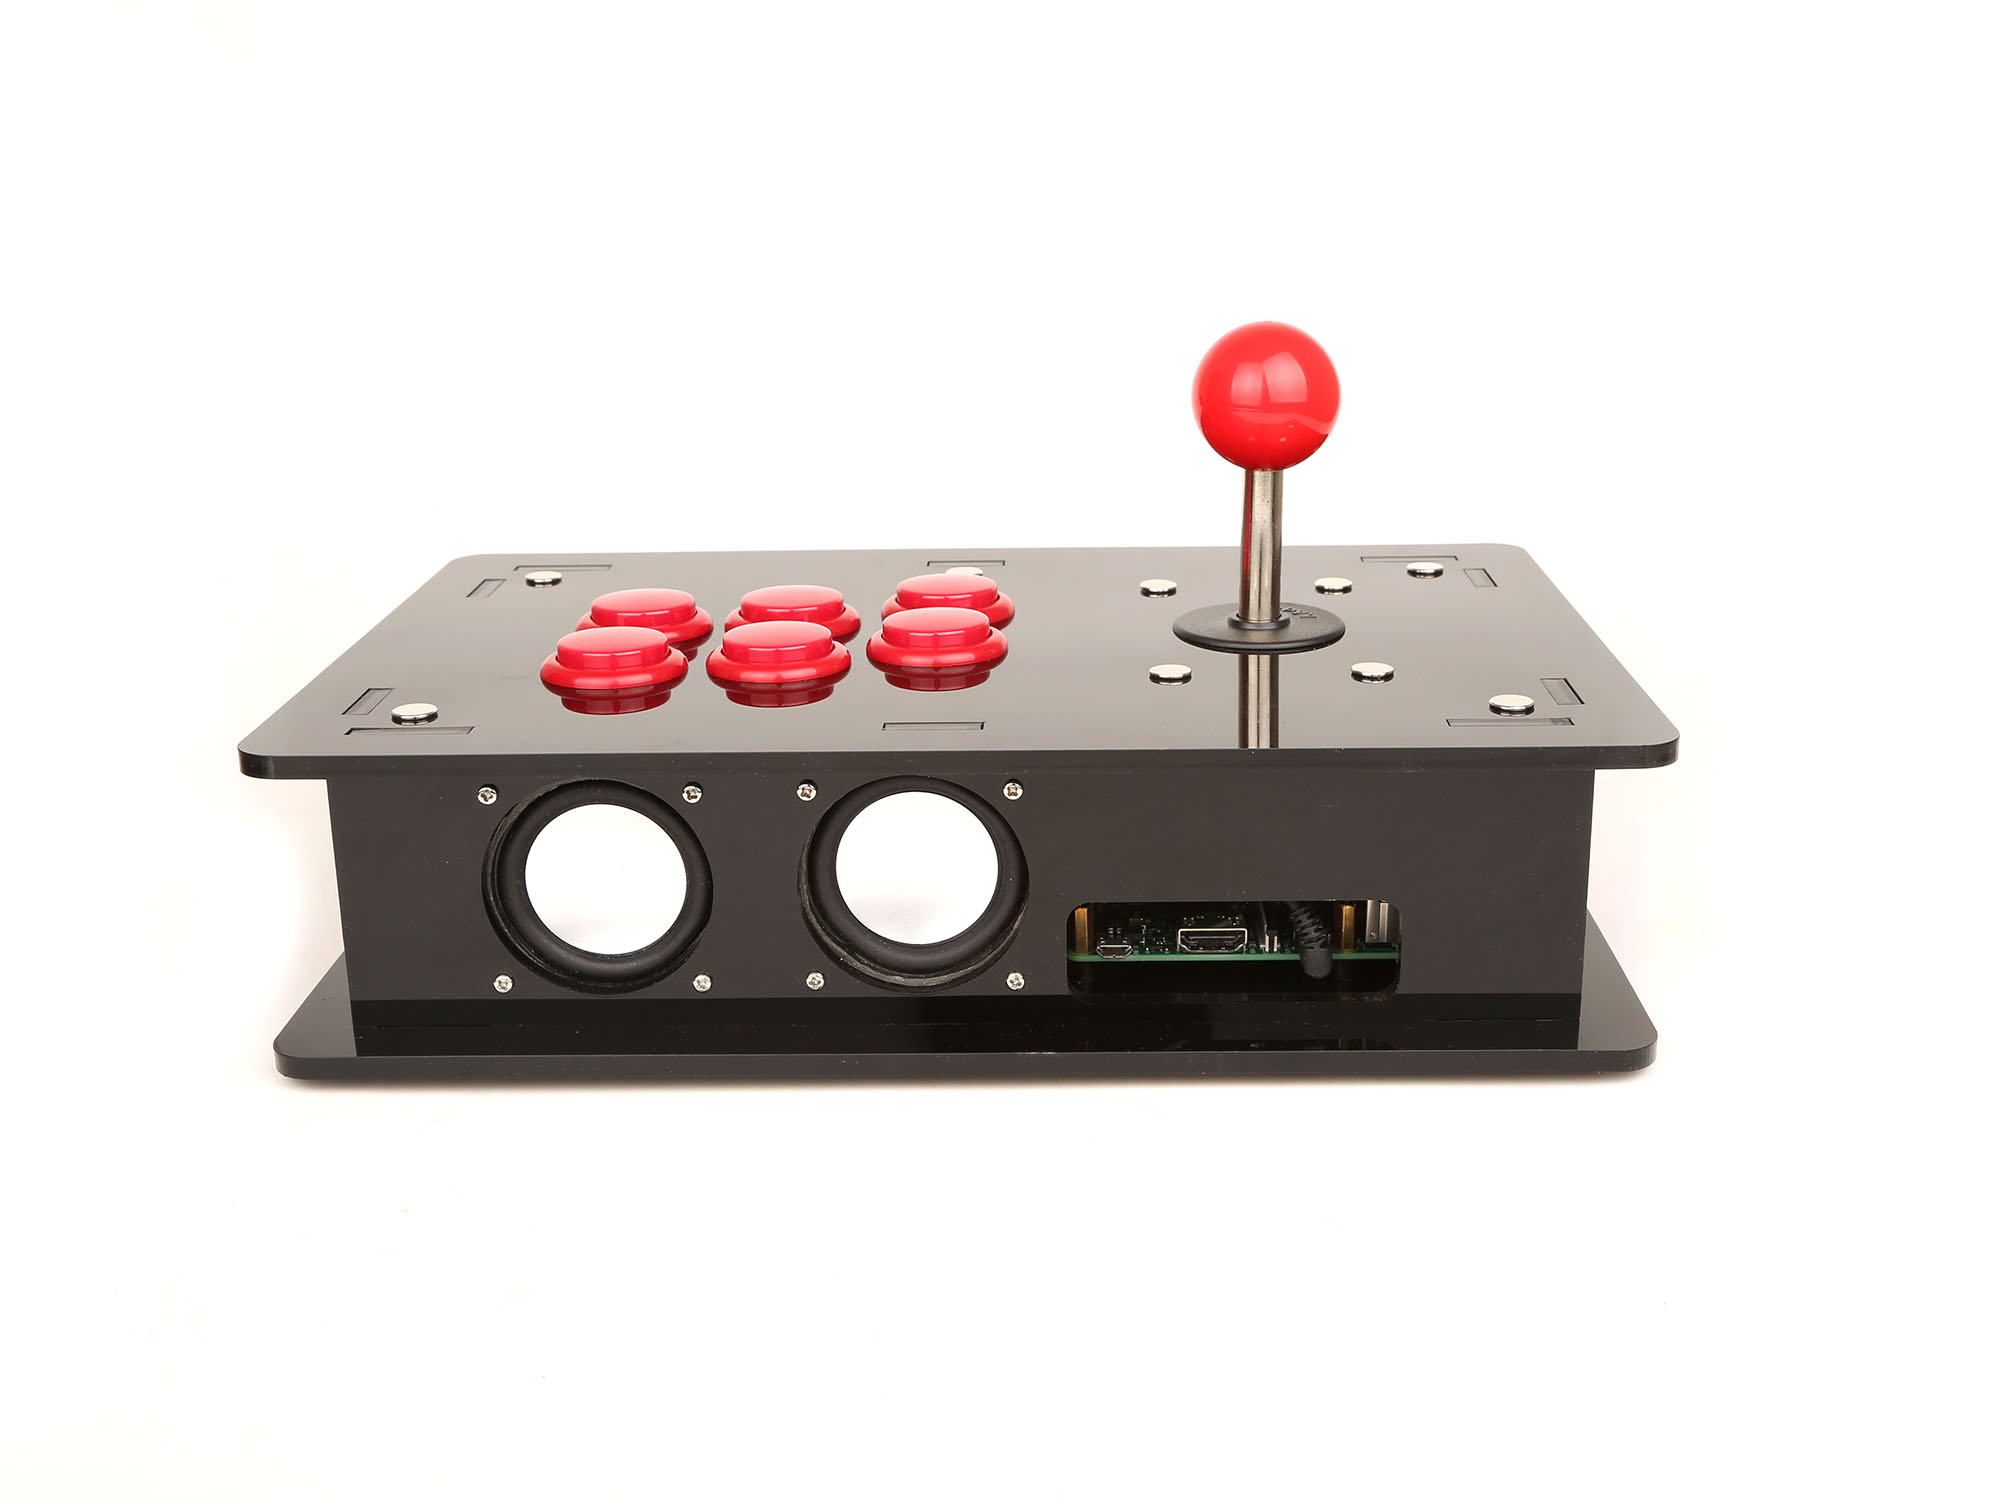 Raspberry Pi Acrylic DIY Retro Game Arcade Kit